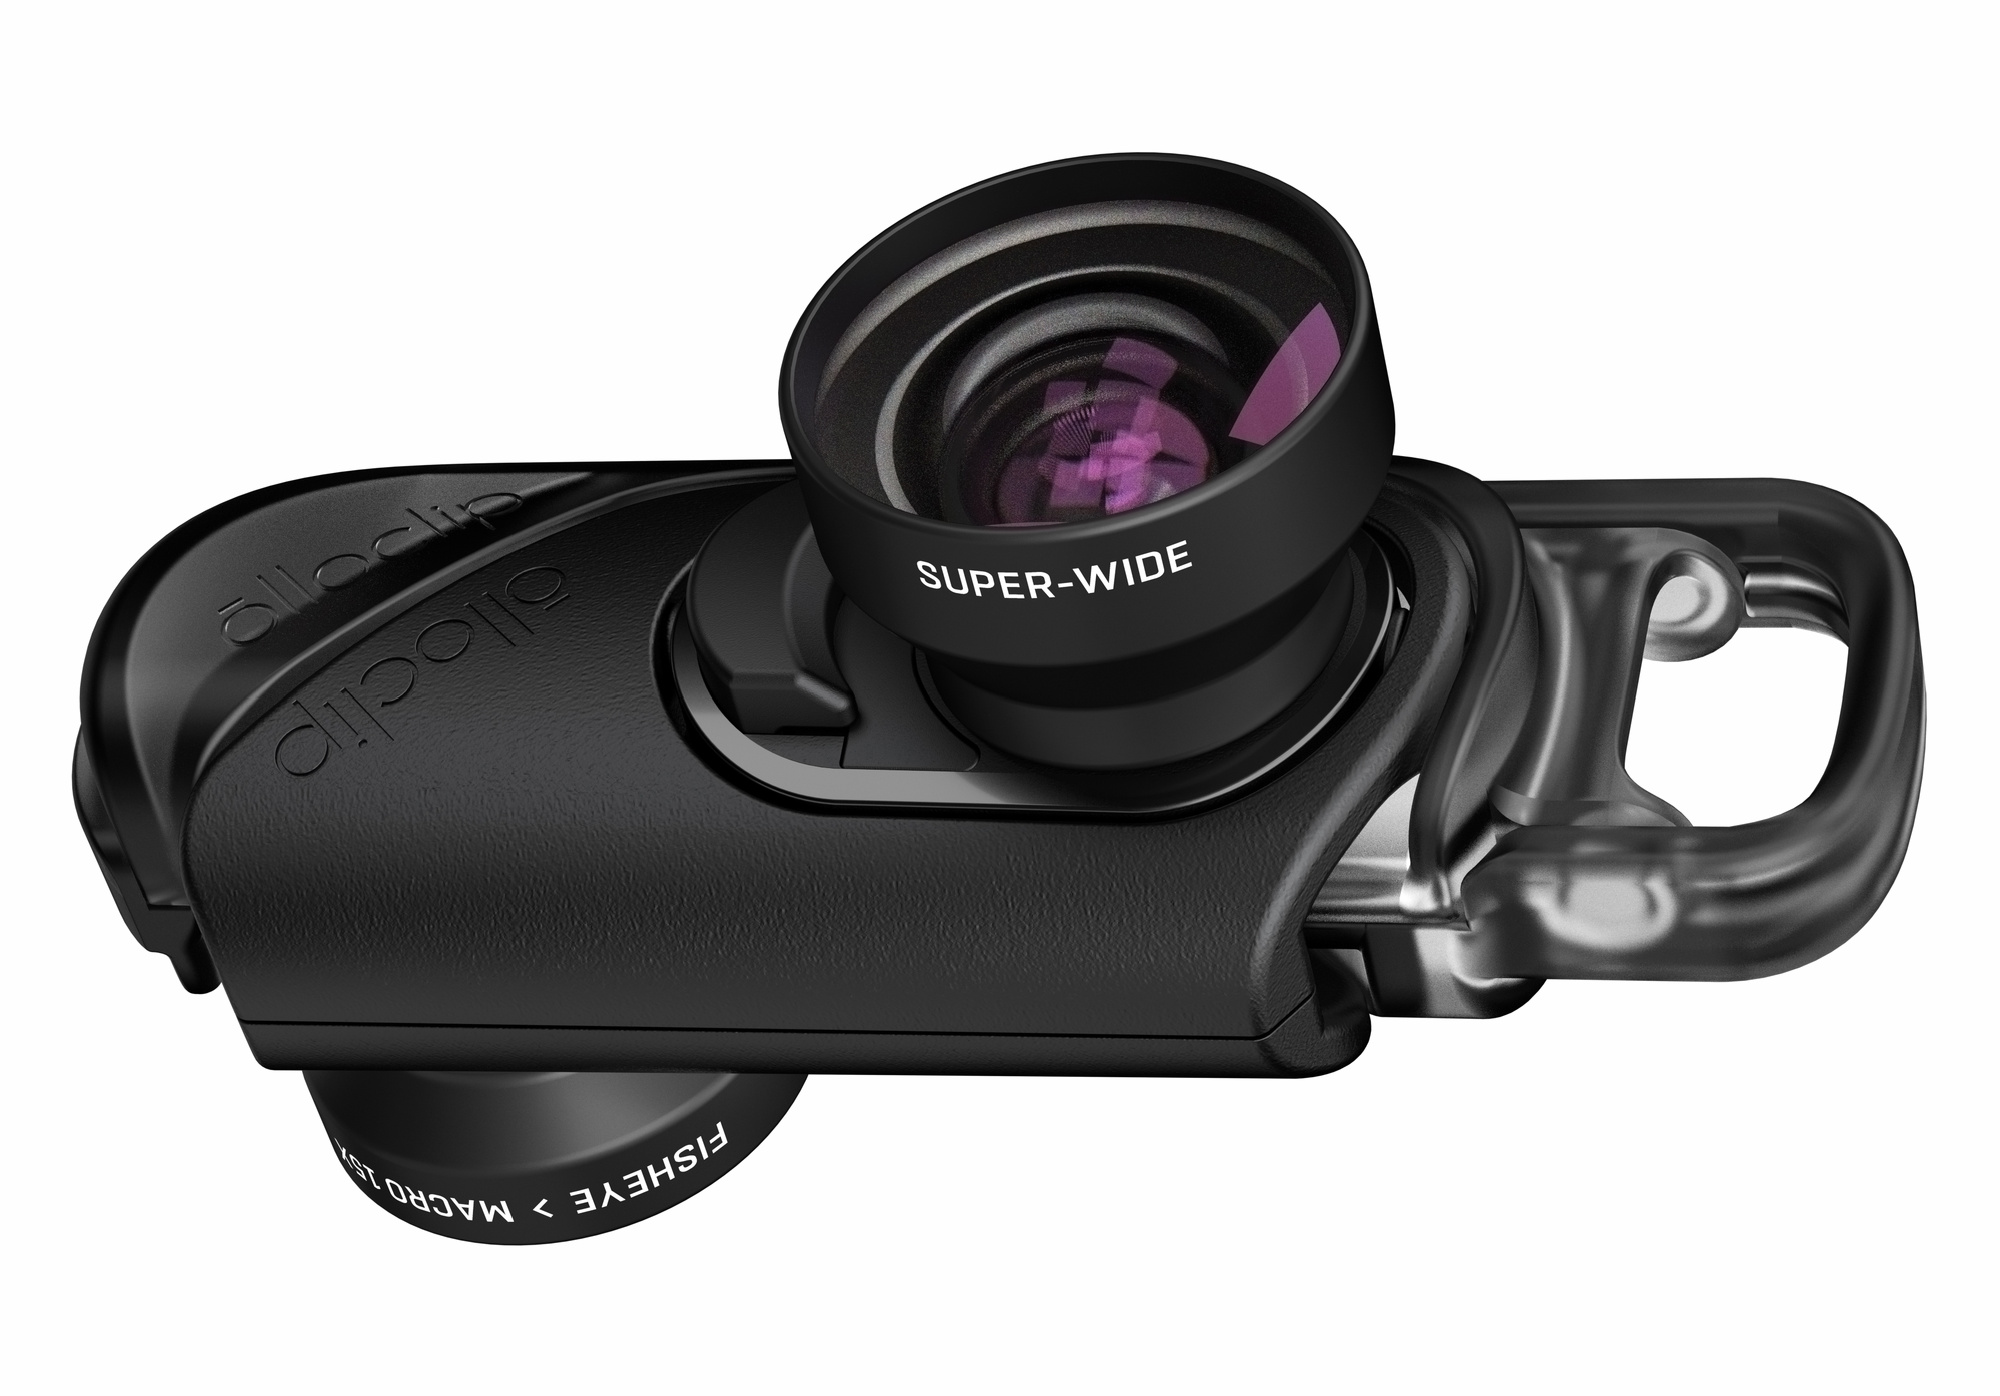 new product 9ed66 7b923 5 Best iPhone 7 Camera Lenses and Add-ons